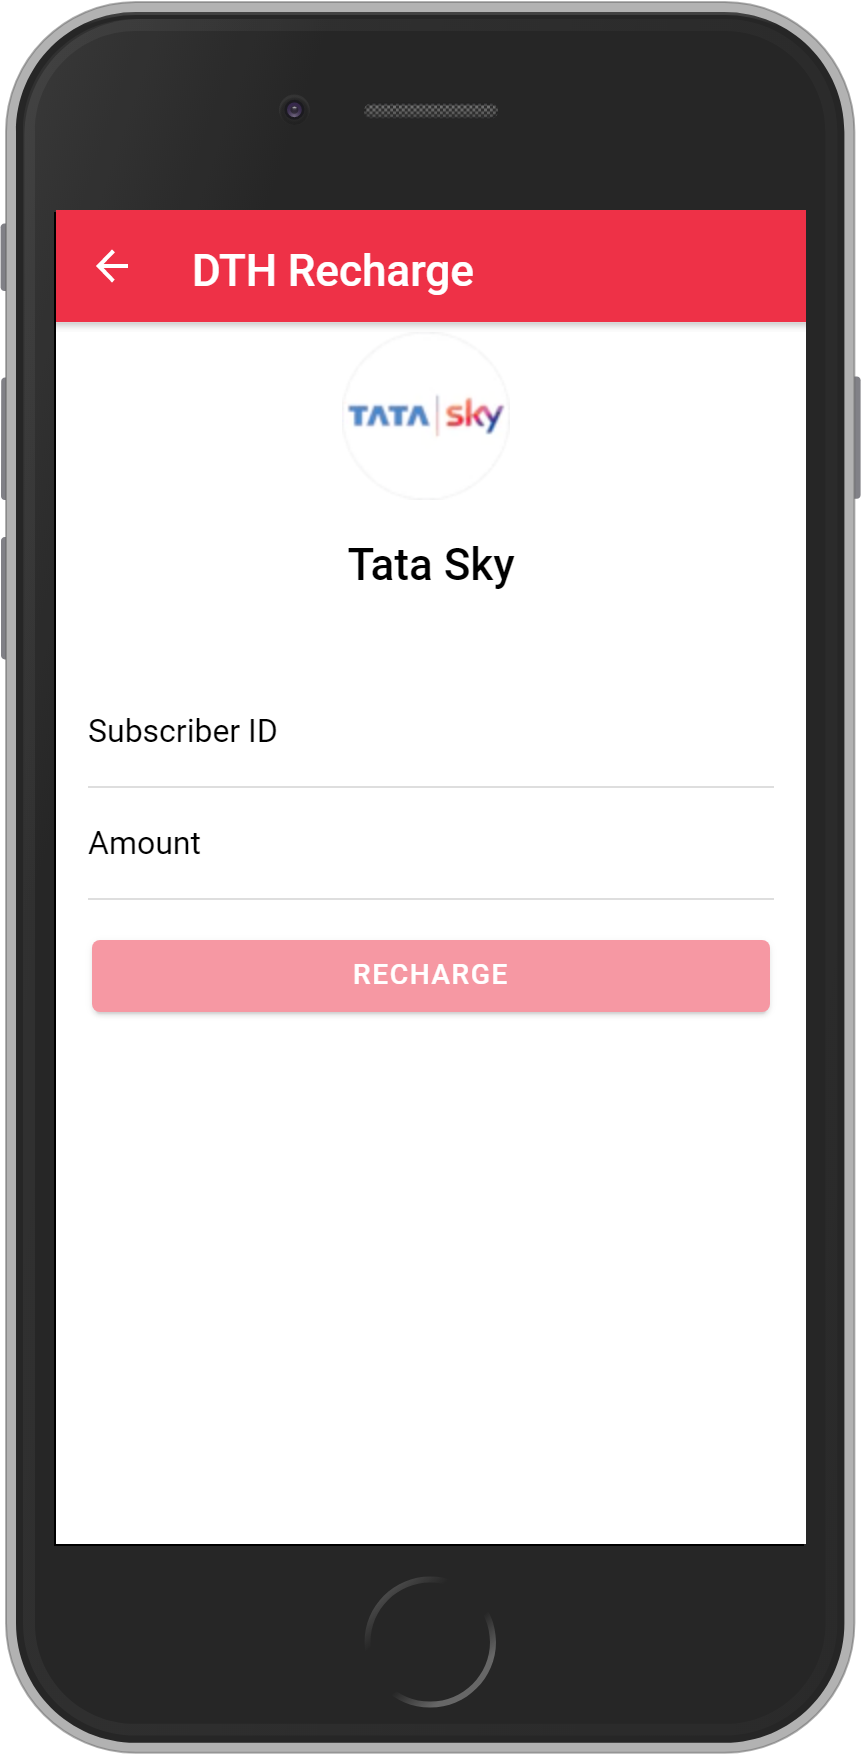 Get UNLIMITED <b>3.25%</b> CASHBACK on Tata Sky DTH Recharges.